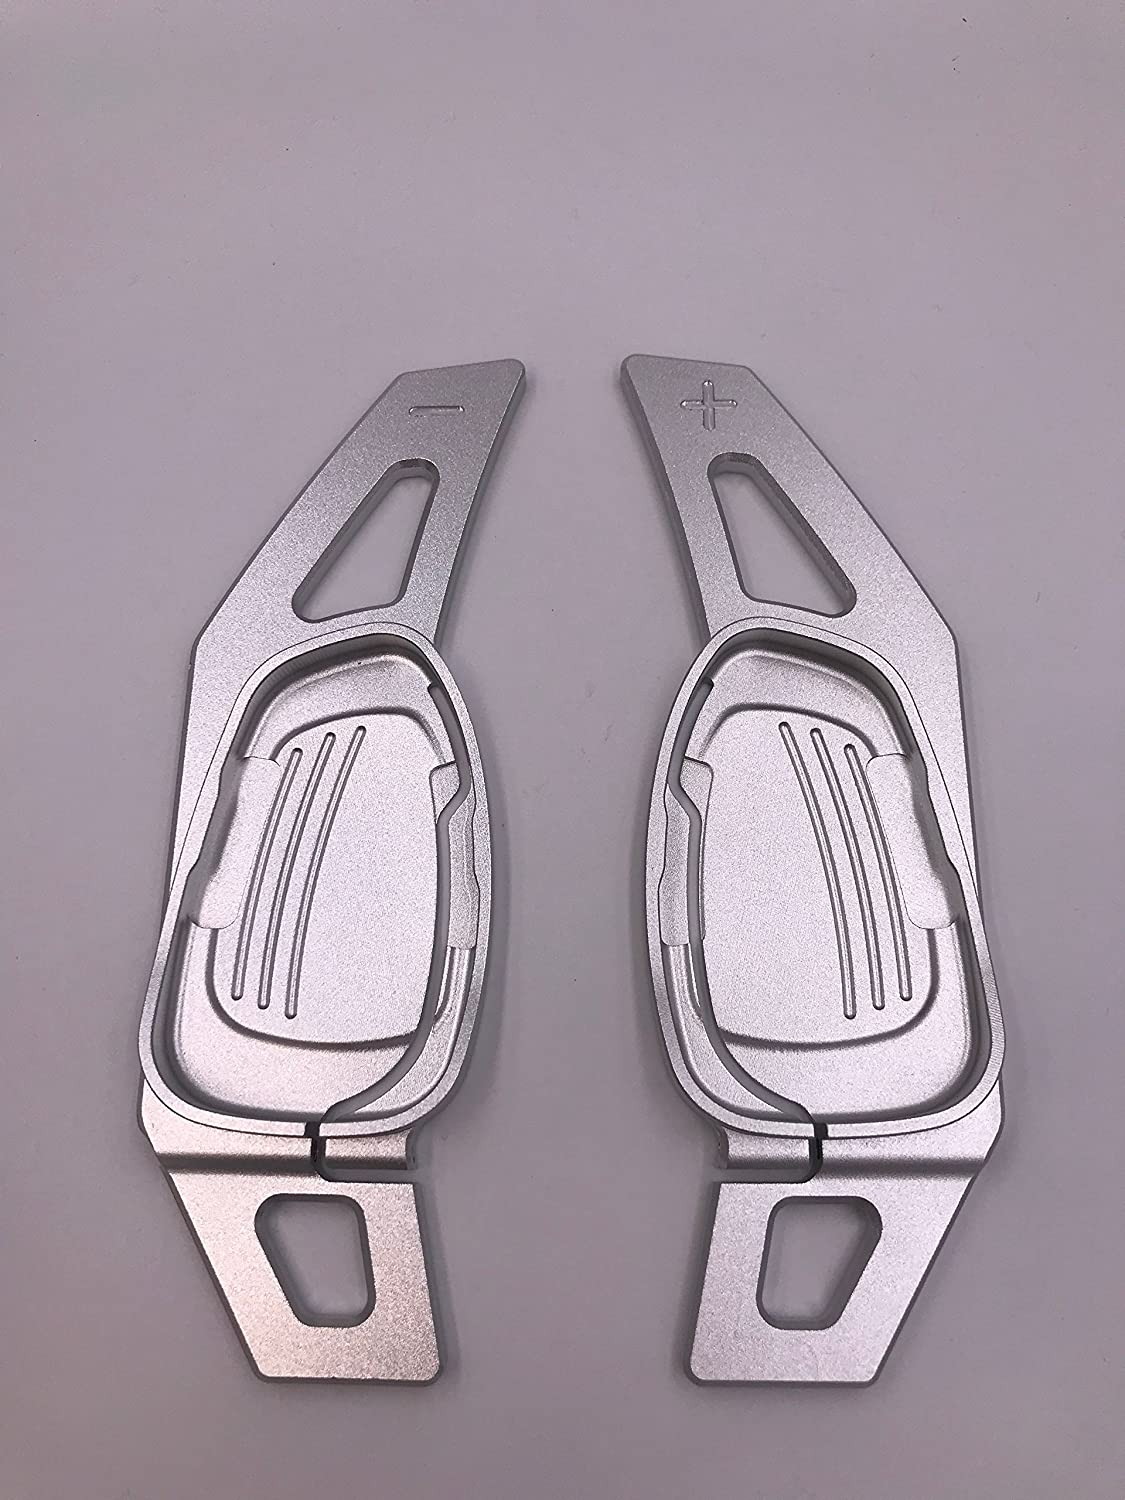 H-Customs S-Tronic Schaltwippen Shift Paddle Verl/ängerung RS A5 S3 S5 S6 SQ5 RS3 RS6 RS7 2015-2017 Silber